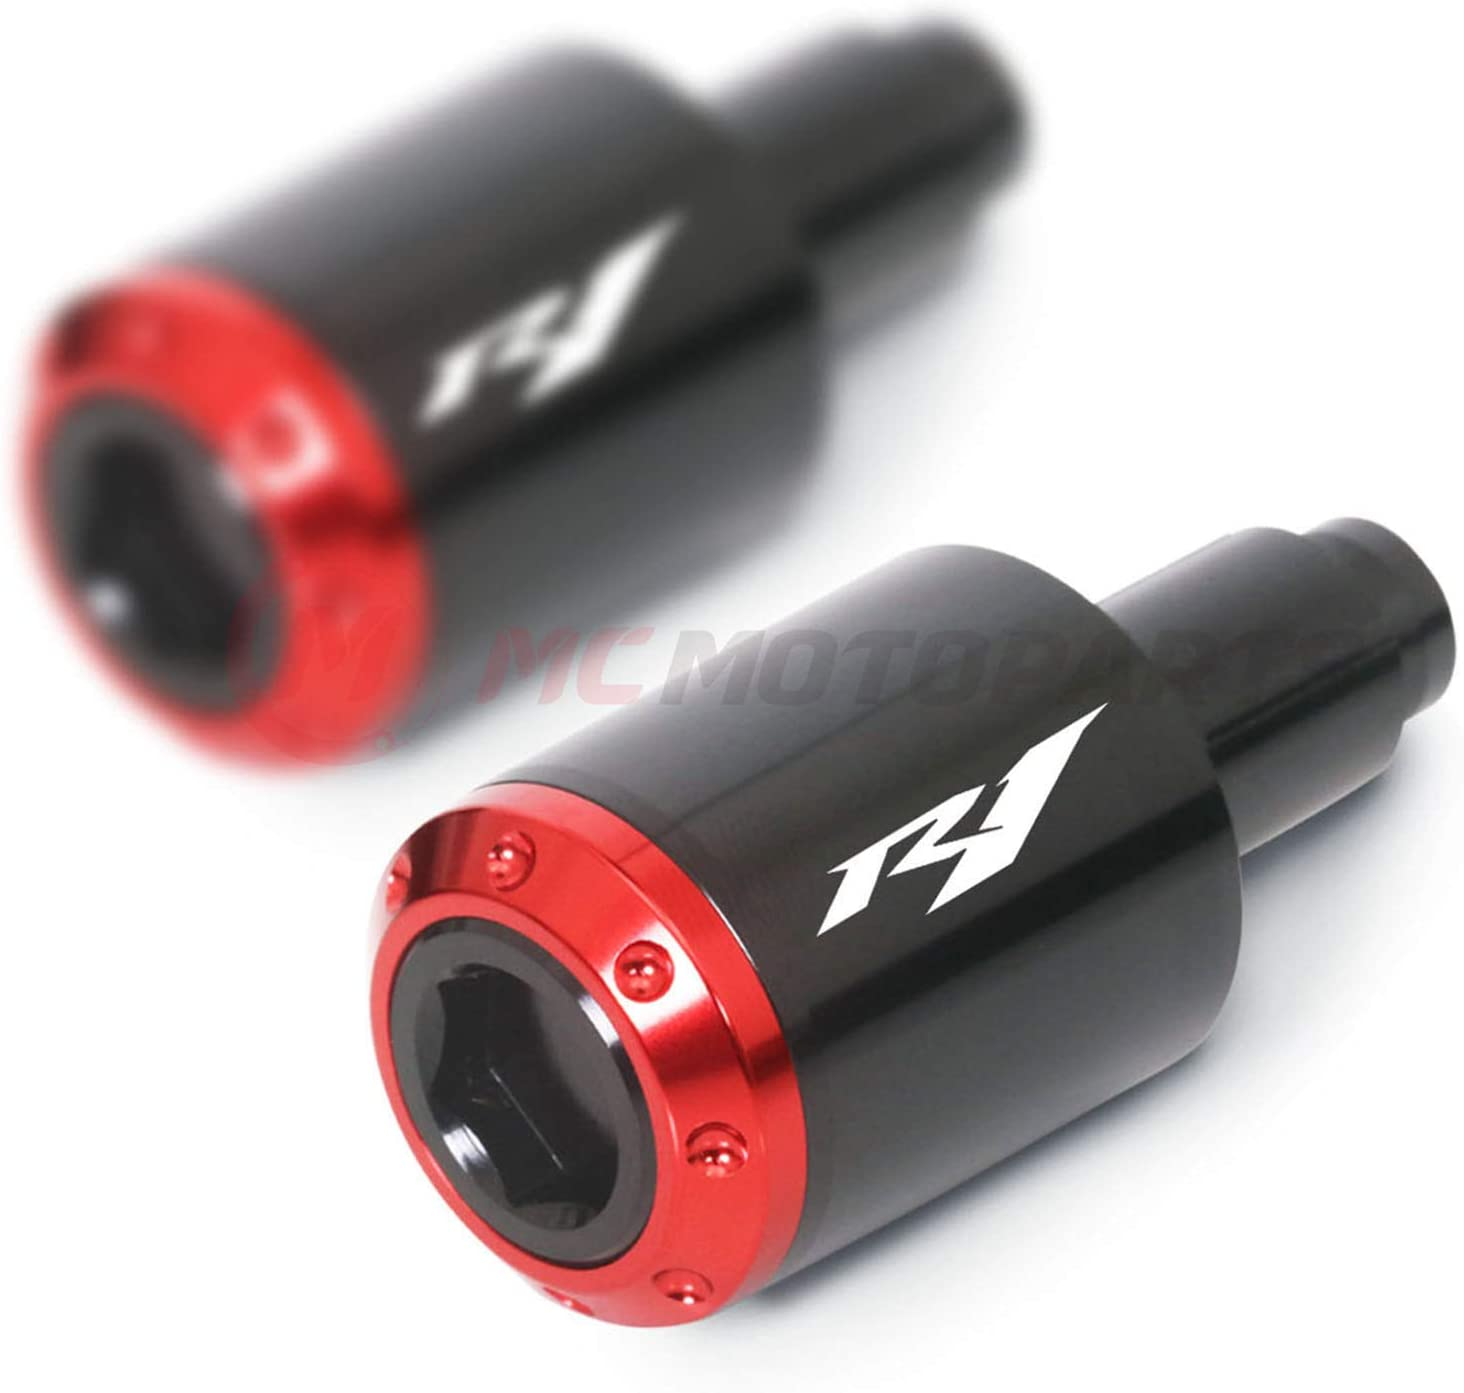 MC MOTOPARTS ATOM Handle Bar End YZF with Compatible Sliders Max Max 88% OFF 43% OFF R1